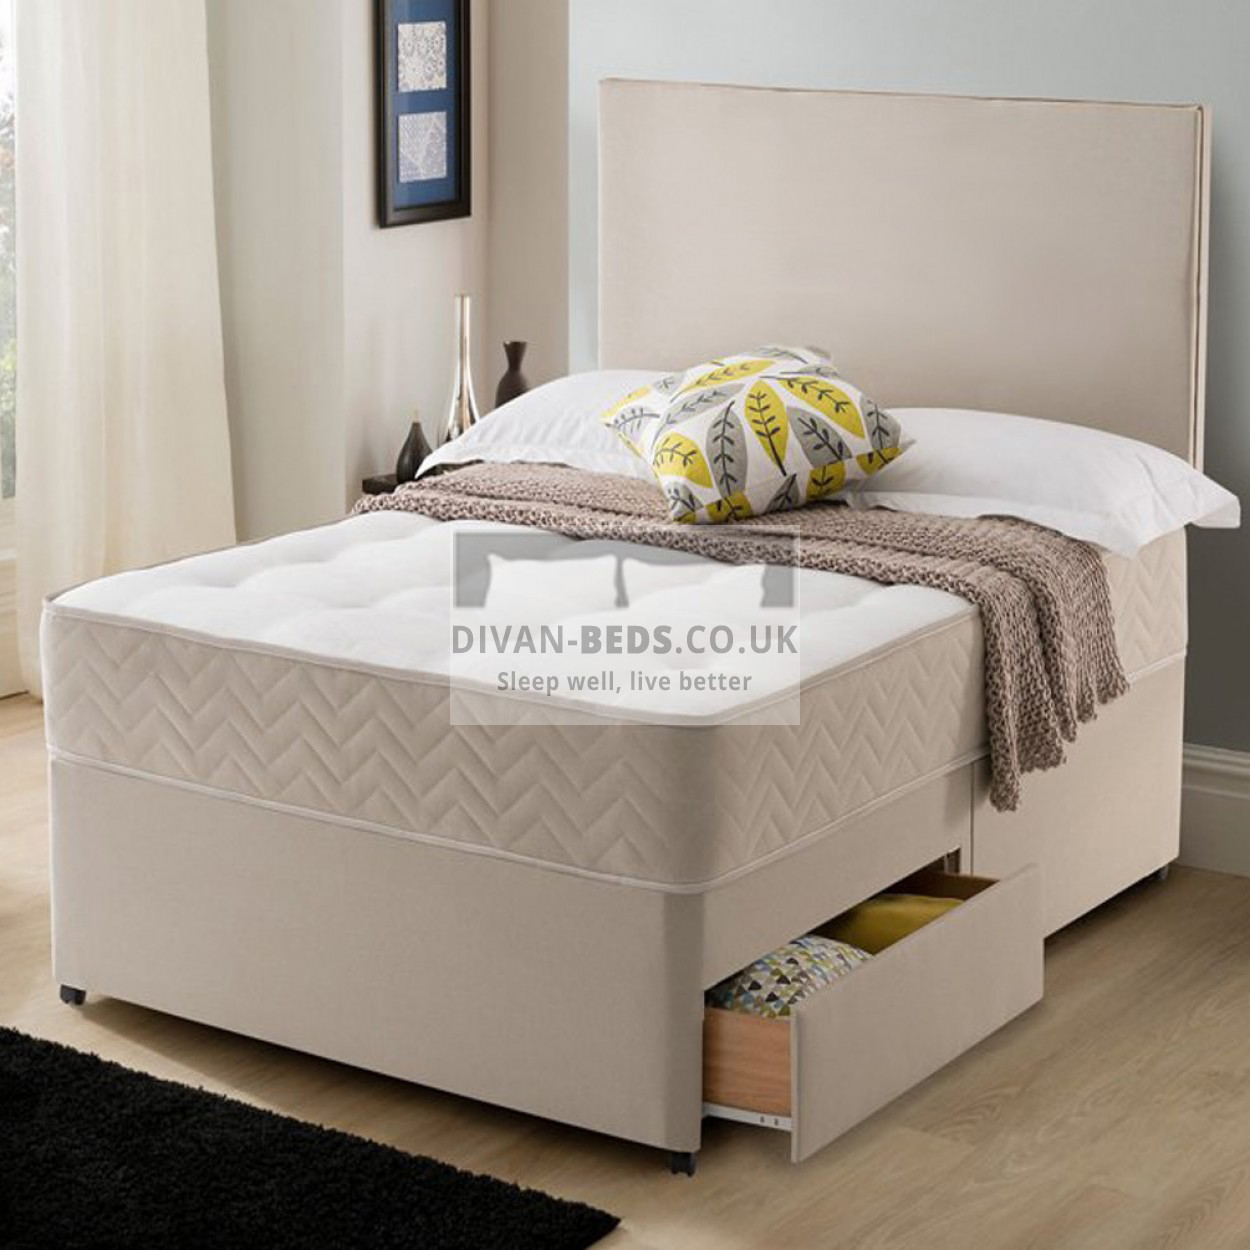 Divan Bed And Mattress Deals Callum Stone Suede Divan Bed With Spring Memory Foam Mattress